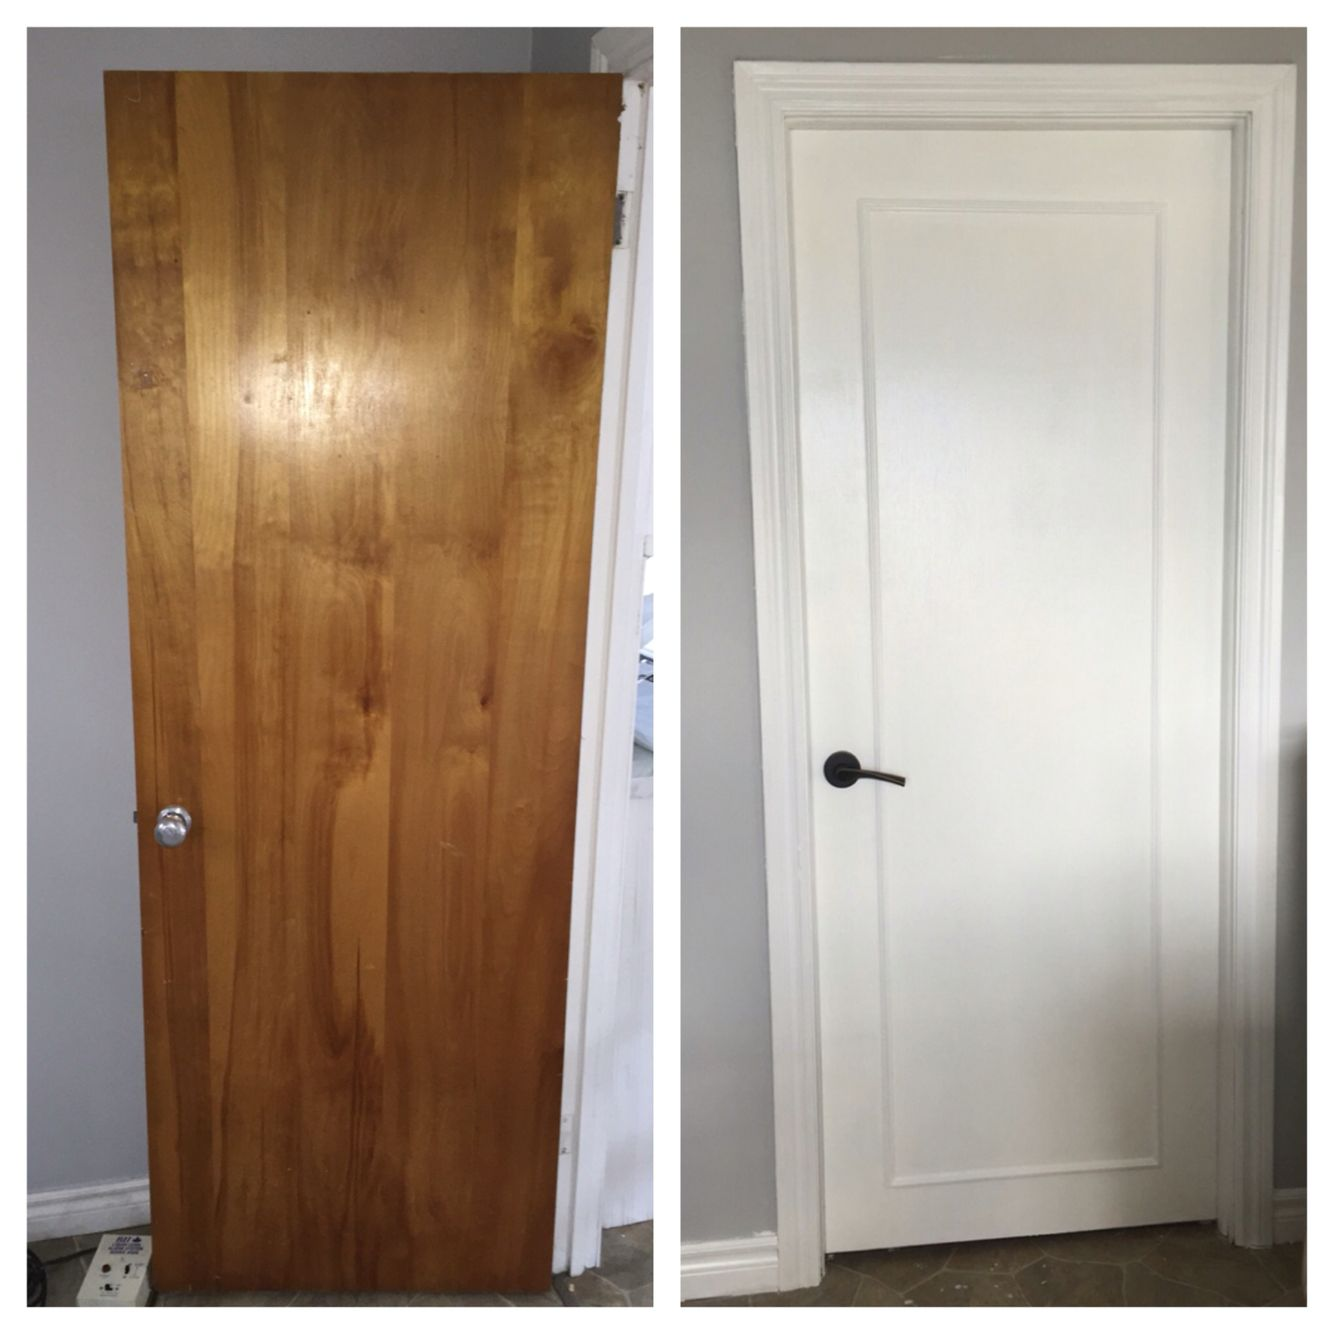 updated old wood doors to a modern look with wood trim primer white pearl paint and new